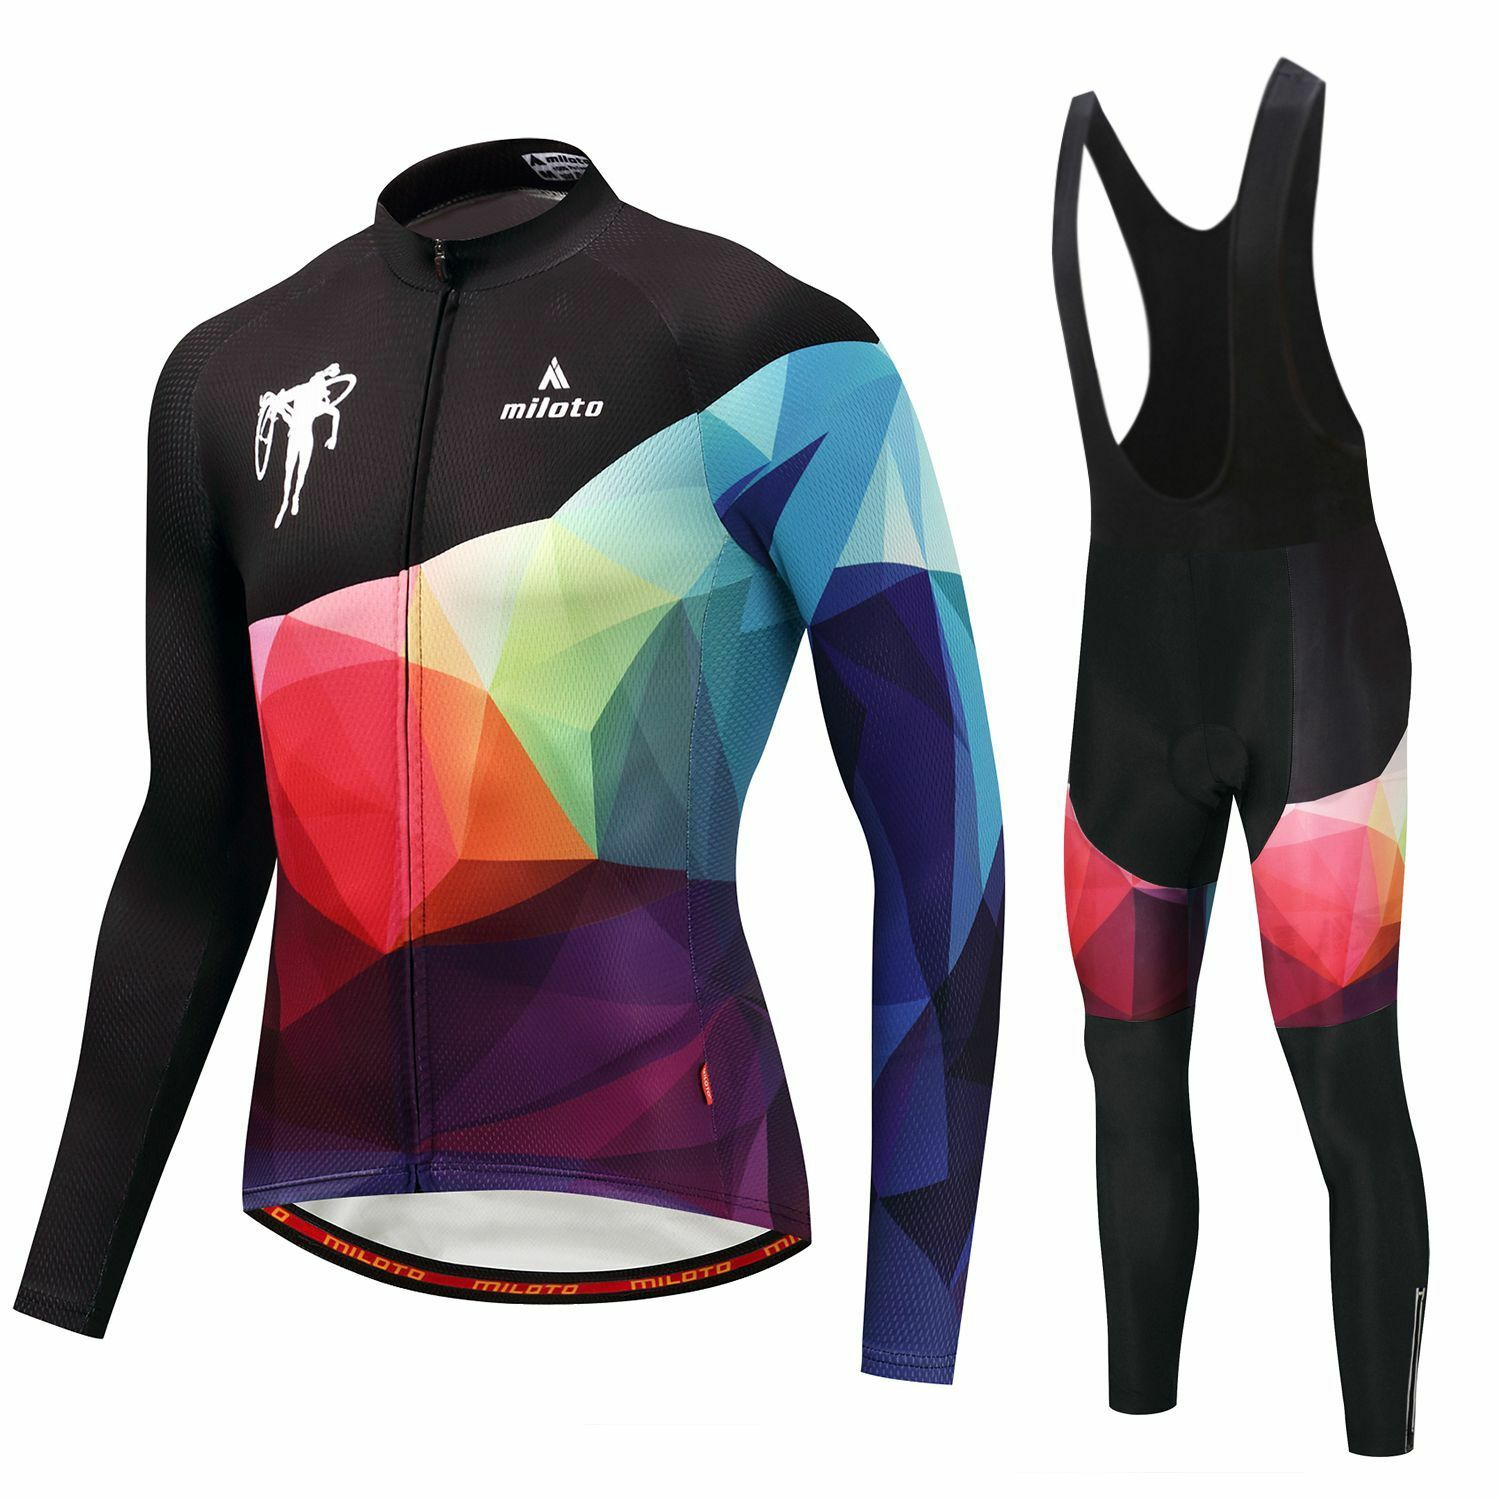 Men's Cycling Clothing Long  Kit Long Sleeve Jersey and (Bib) Pants Padded Set  unique design